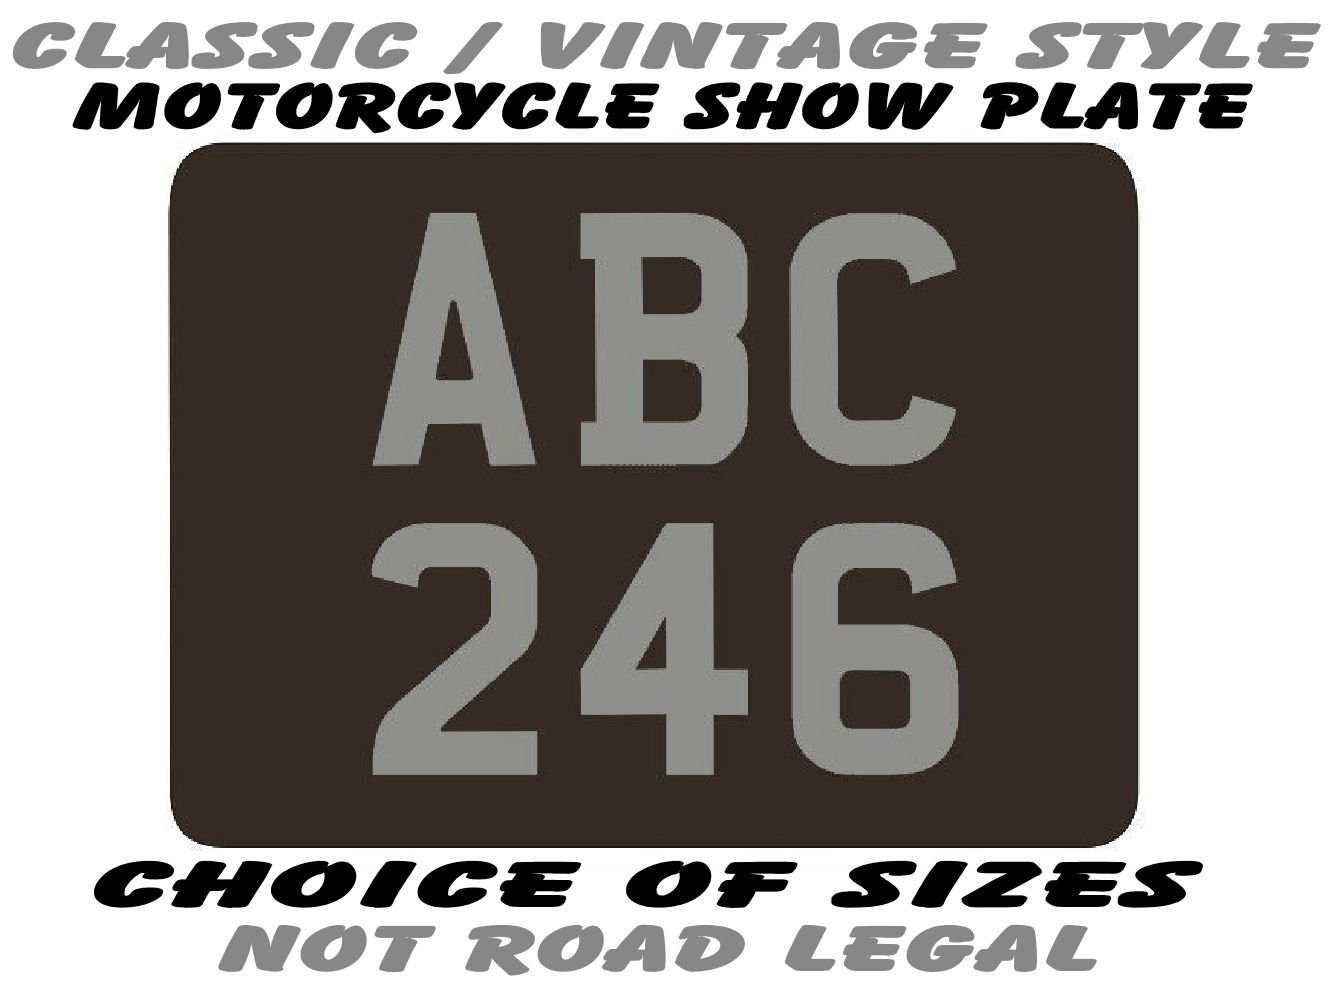 NOT road legal REAR SHOW PLATE in CLASSIC or MODERN STYLE motorcycle number no plates motor cycle bike scooter 9x7 8x6 7x5 or 6x4 PORTRAIT FORMAT MODERN, 7x5 NO BORDER taller than wide